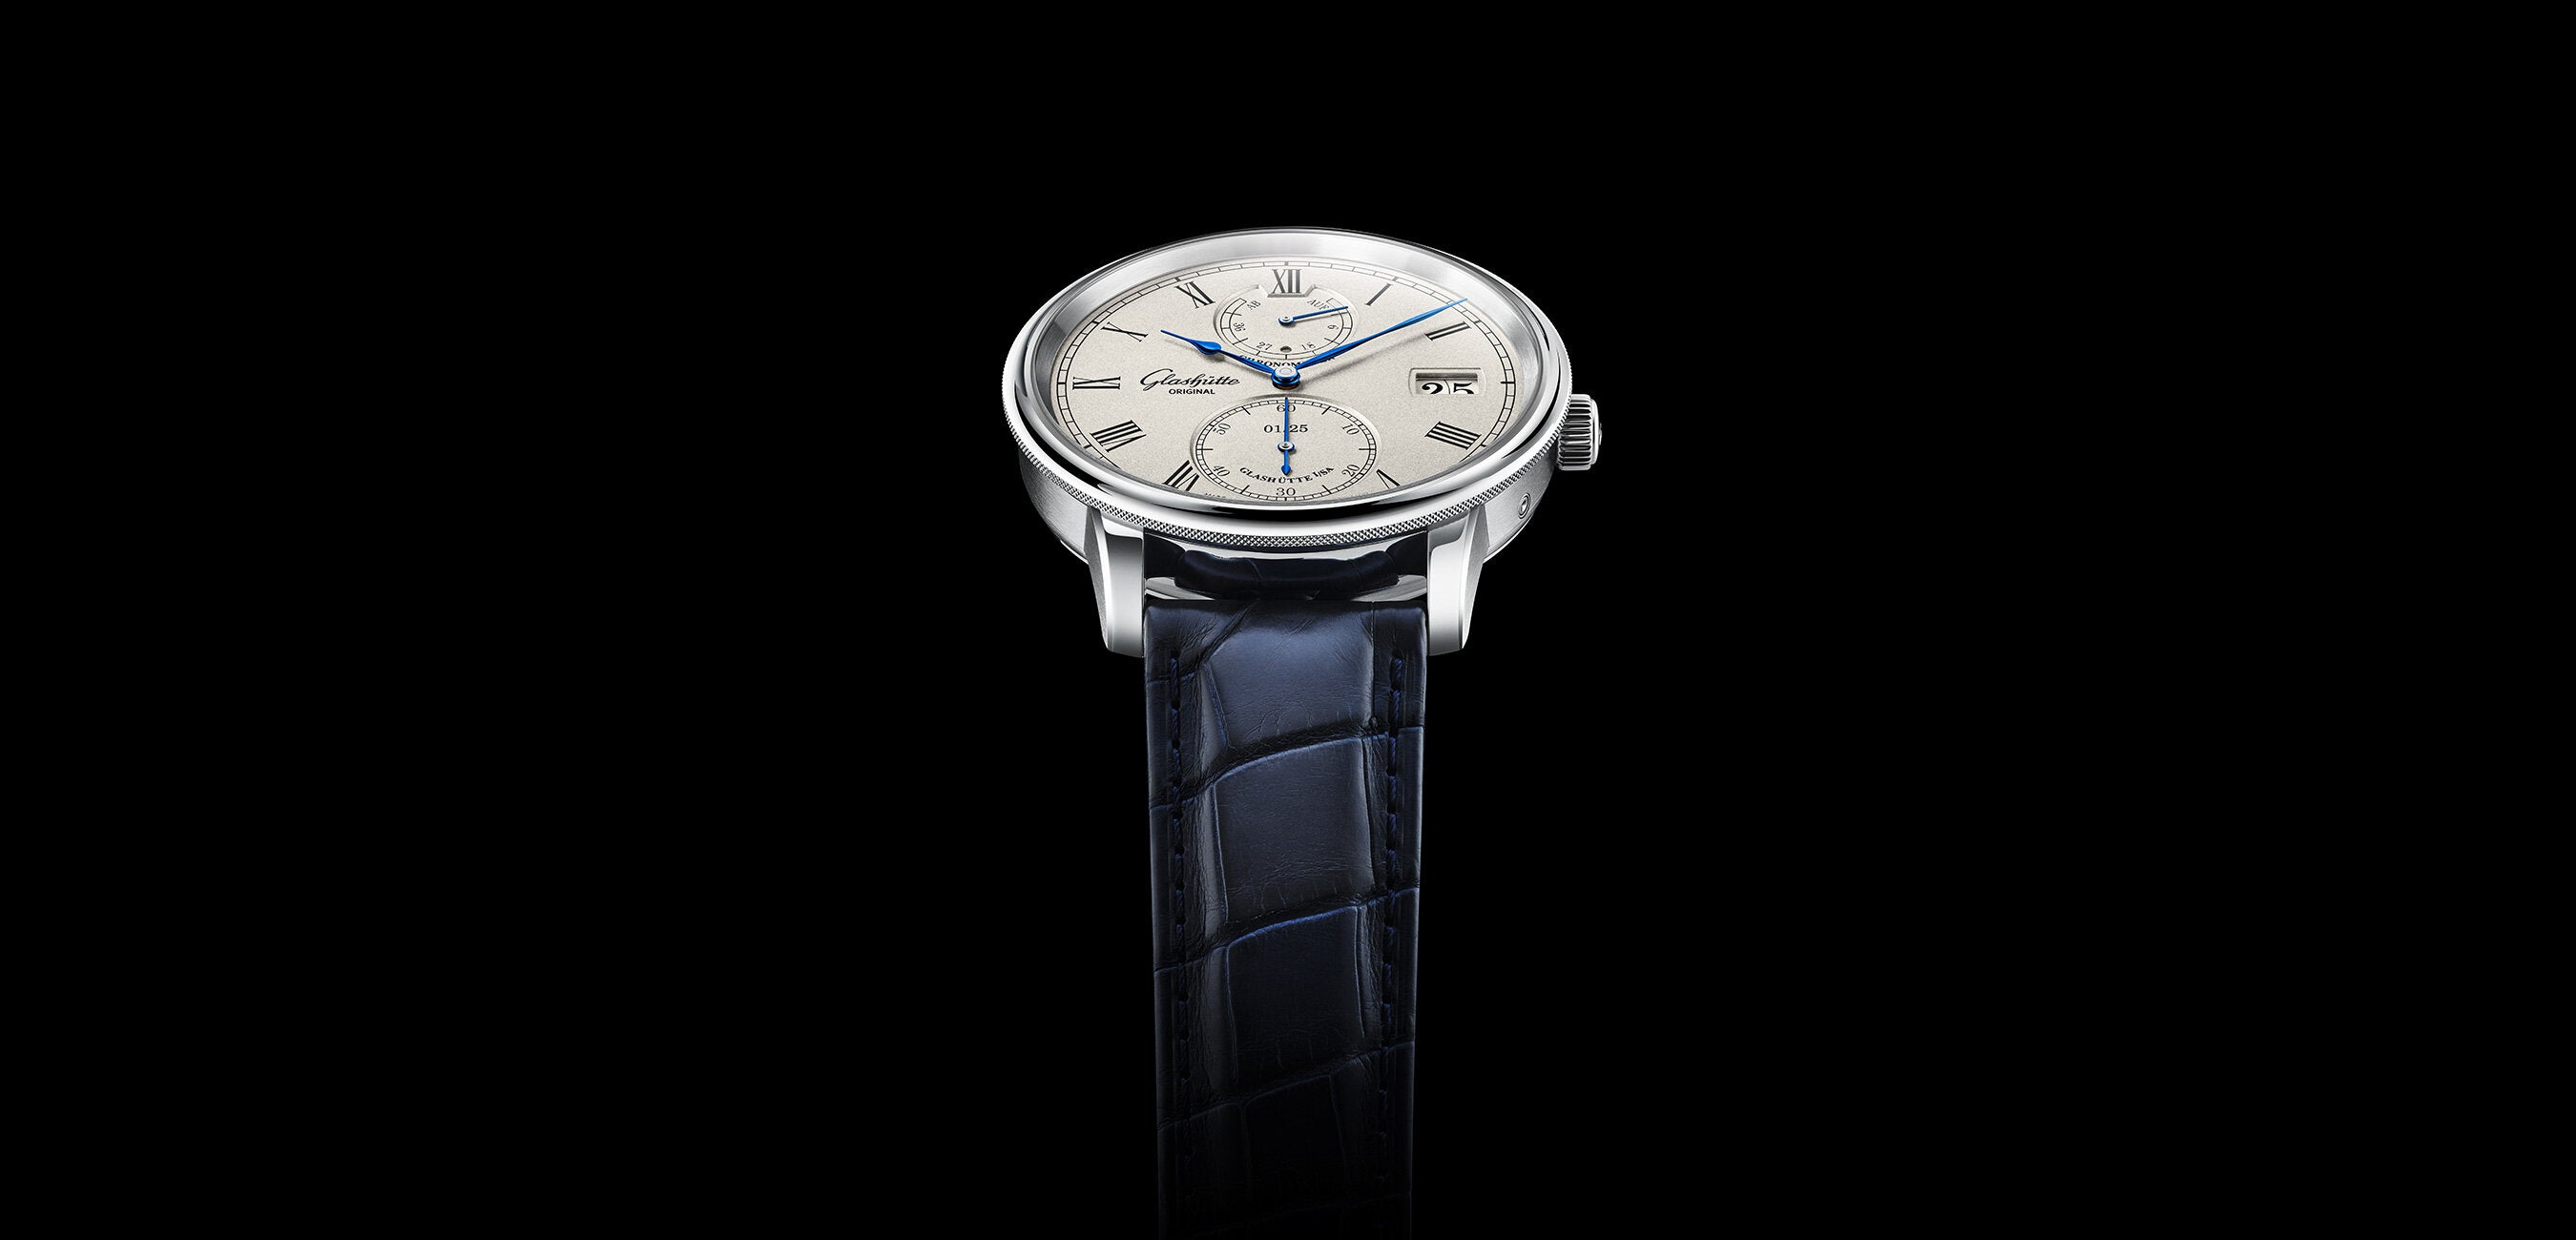 For connoisseurs of the fine art of German watchmaking